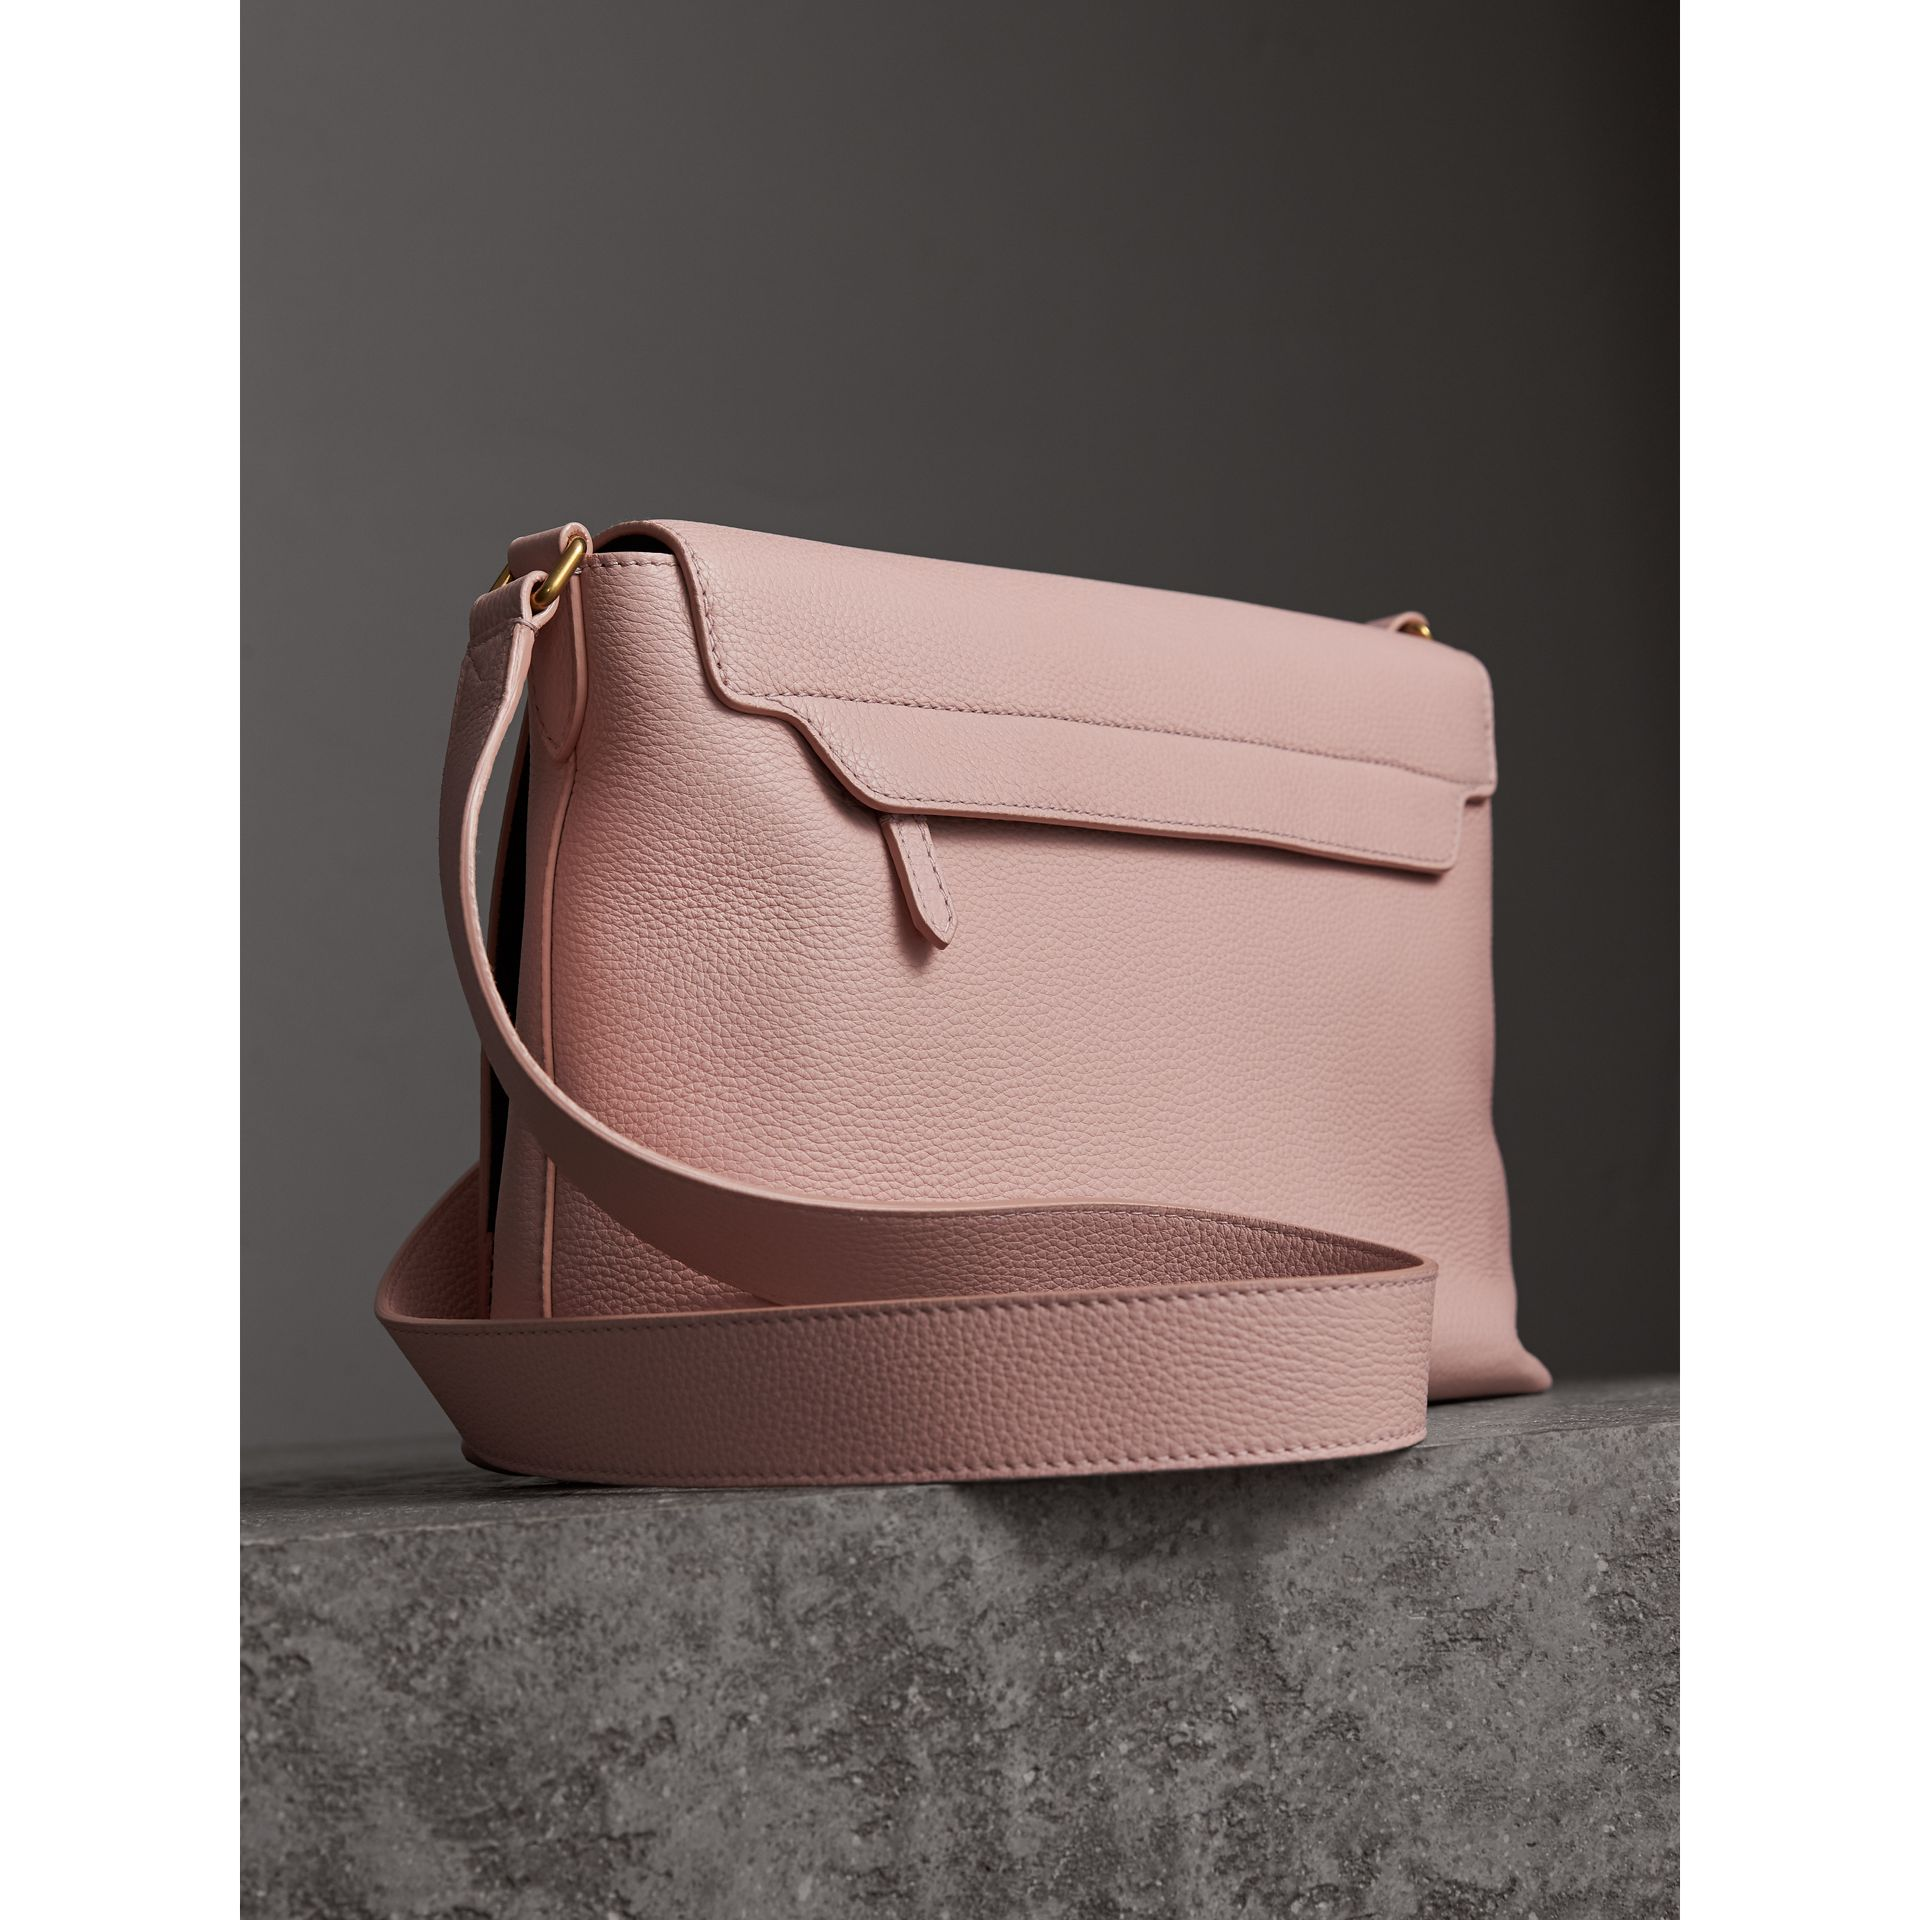 Sac Messenger moyen en cuir estampé (Rose Platiné Pâle) - Femme | Burberry - photo de la galerie 3